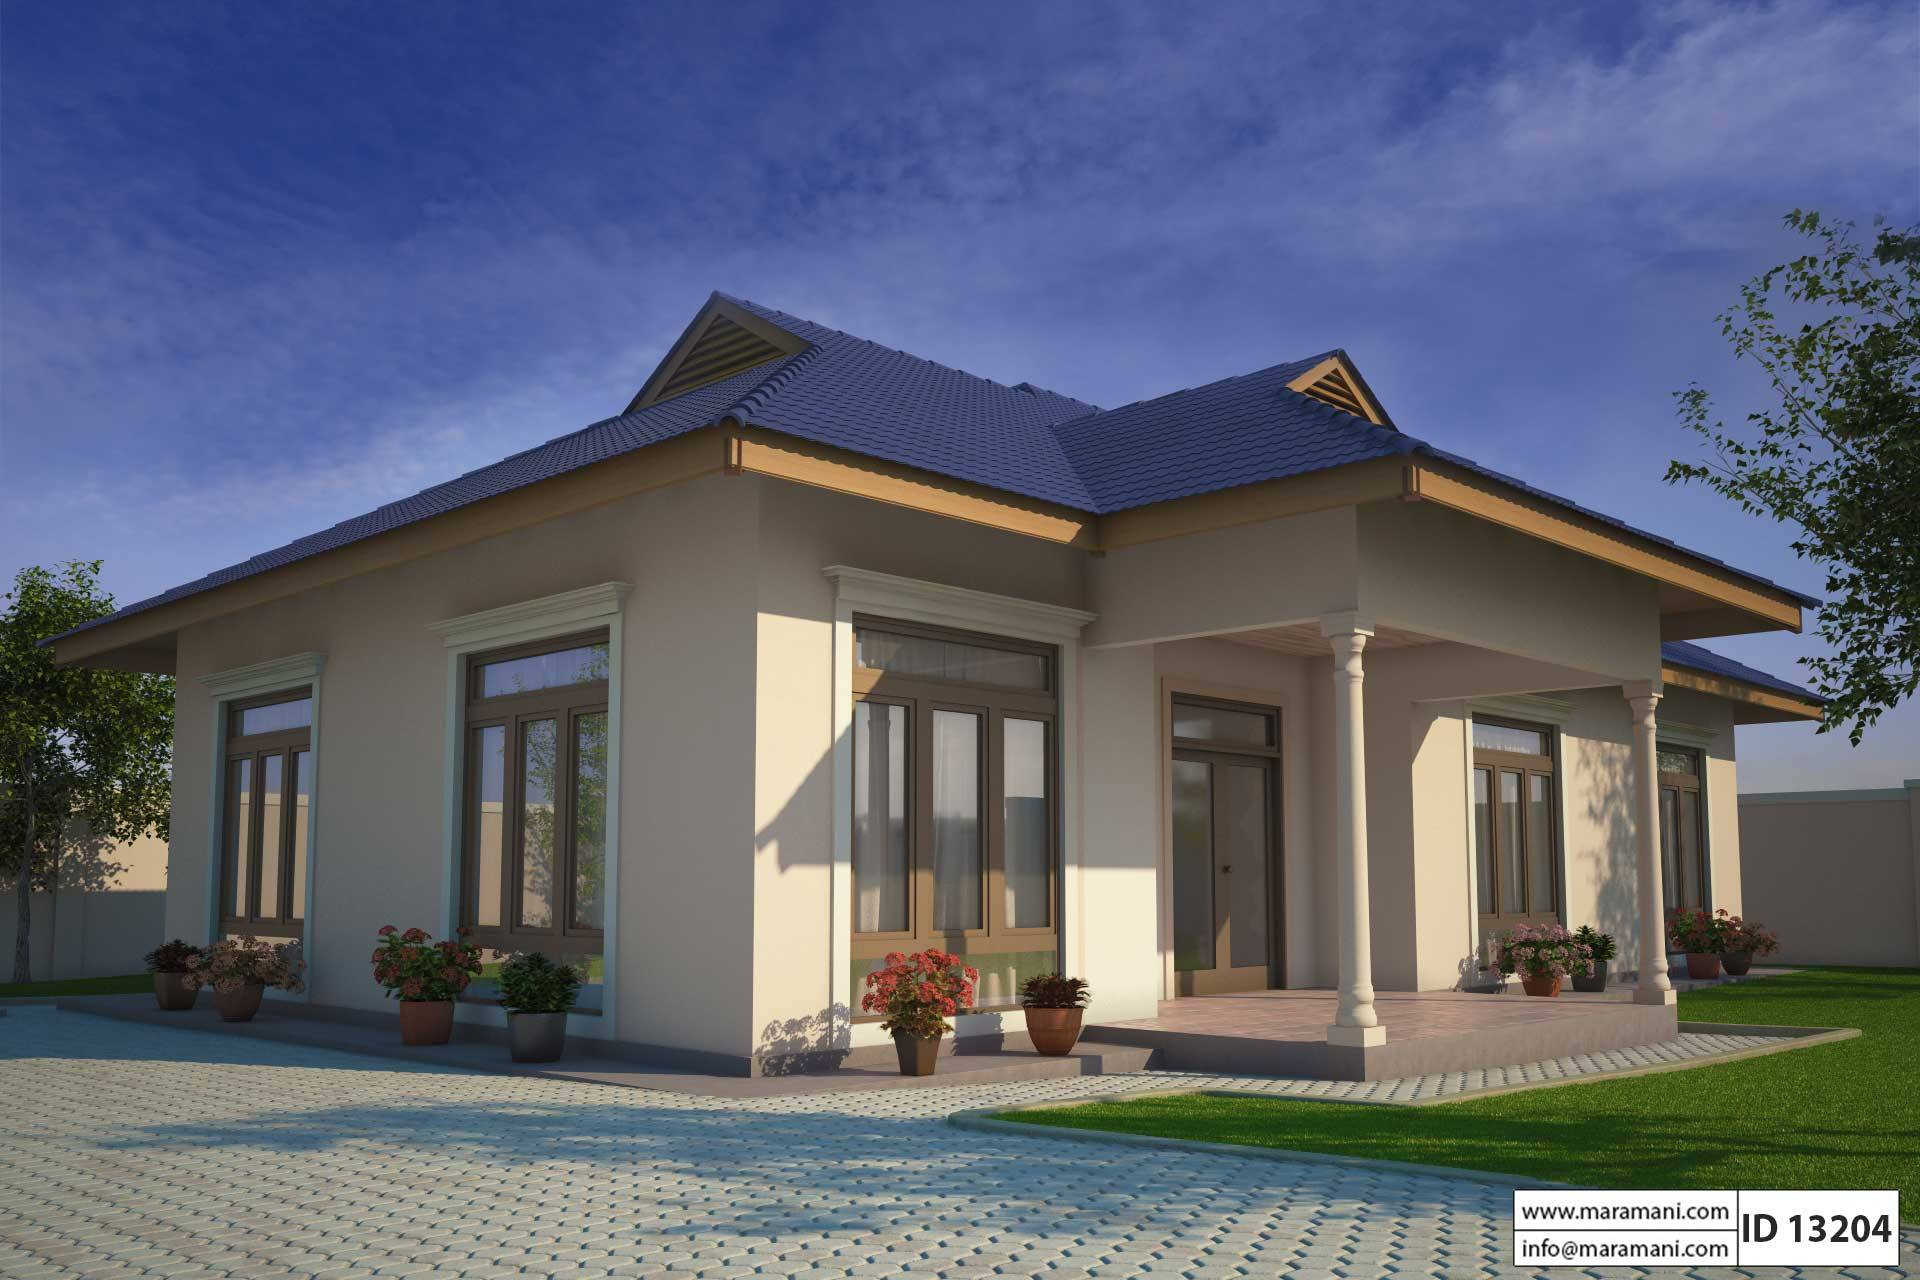 Three bedroom house id 13204 for Modern 3 bedroom house plans and designs